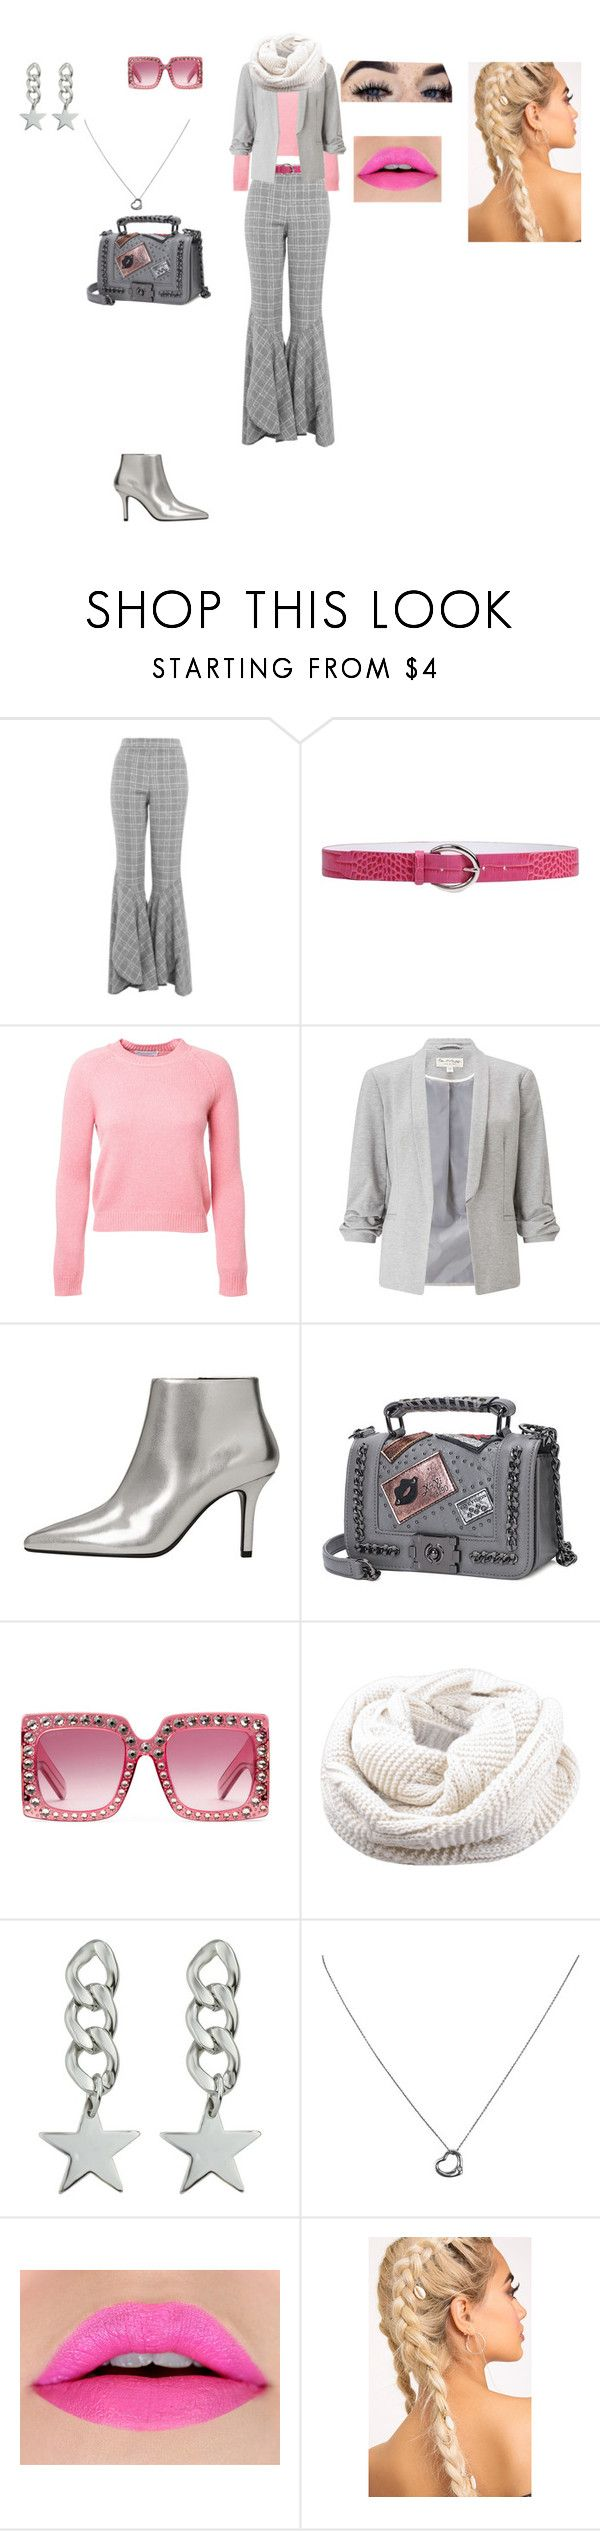 """Casual Outfit"" by helena94-1 on Polyvore featuring Topshop, Orciani, Alexandra Golovanoff, Miss Selfridge, MANGO, Gucci, Tiffany & Co. and polyvorefashion"